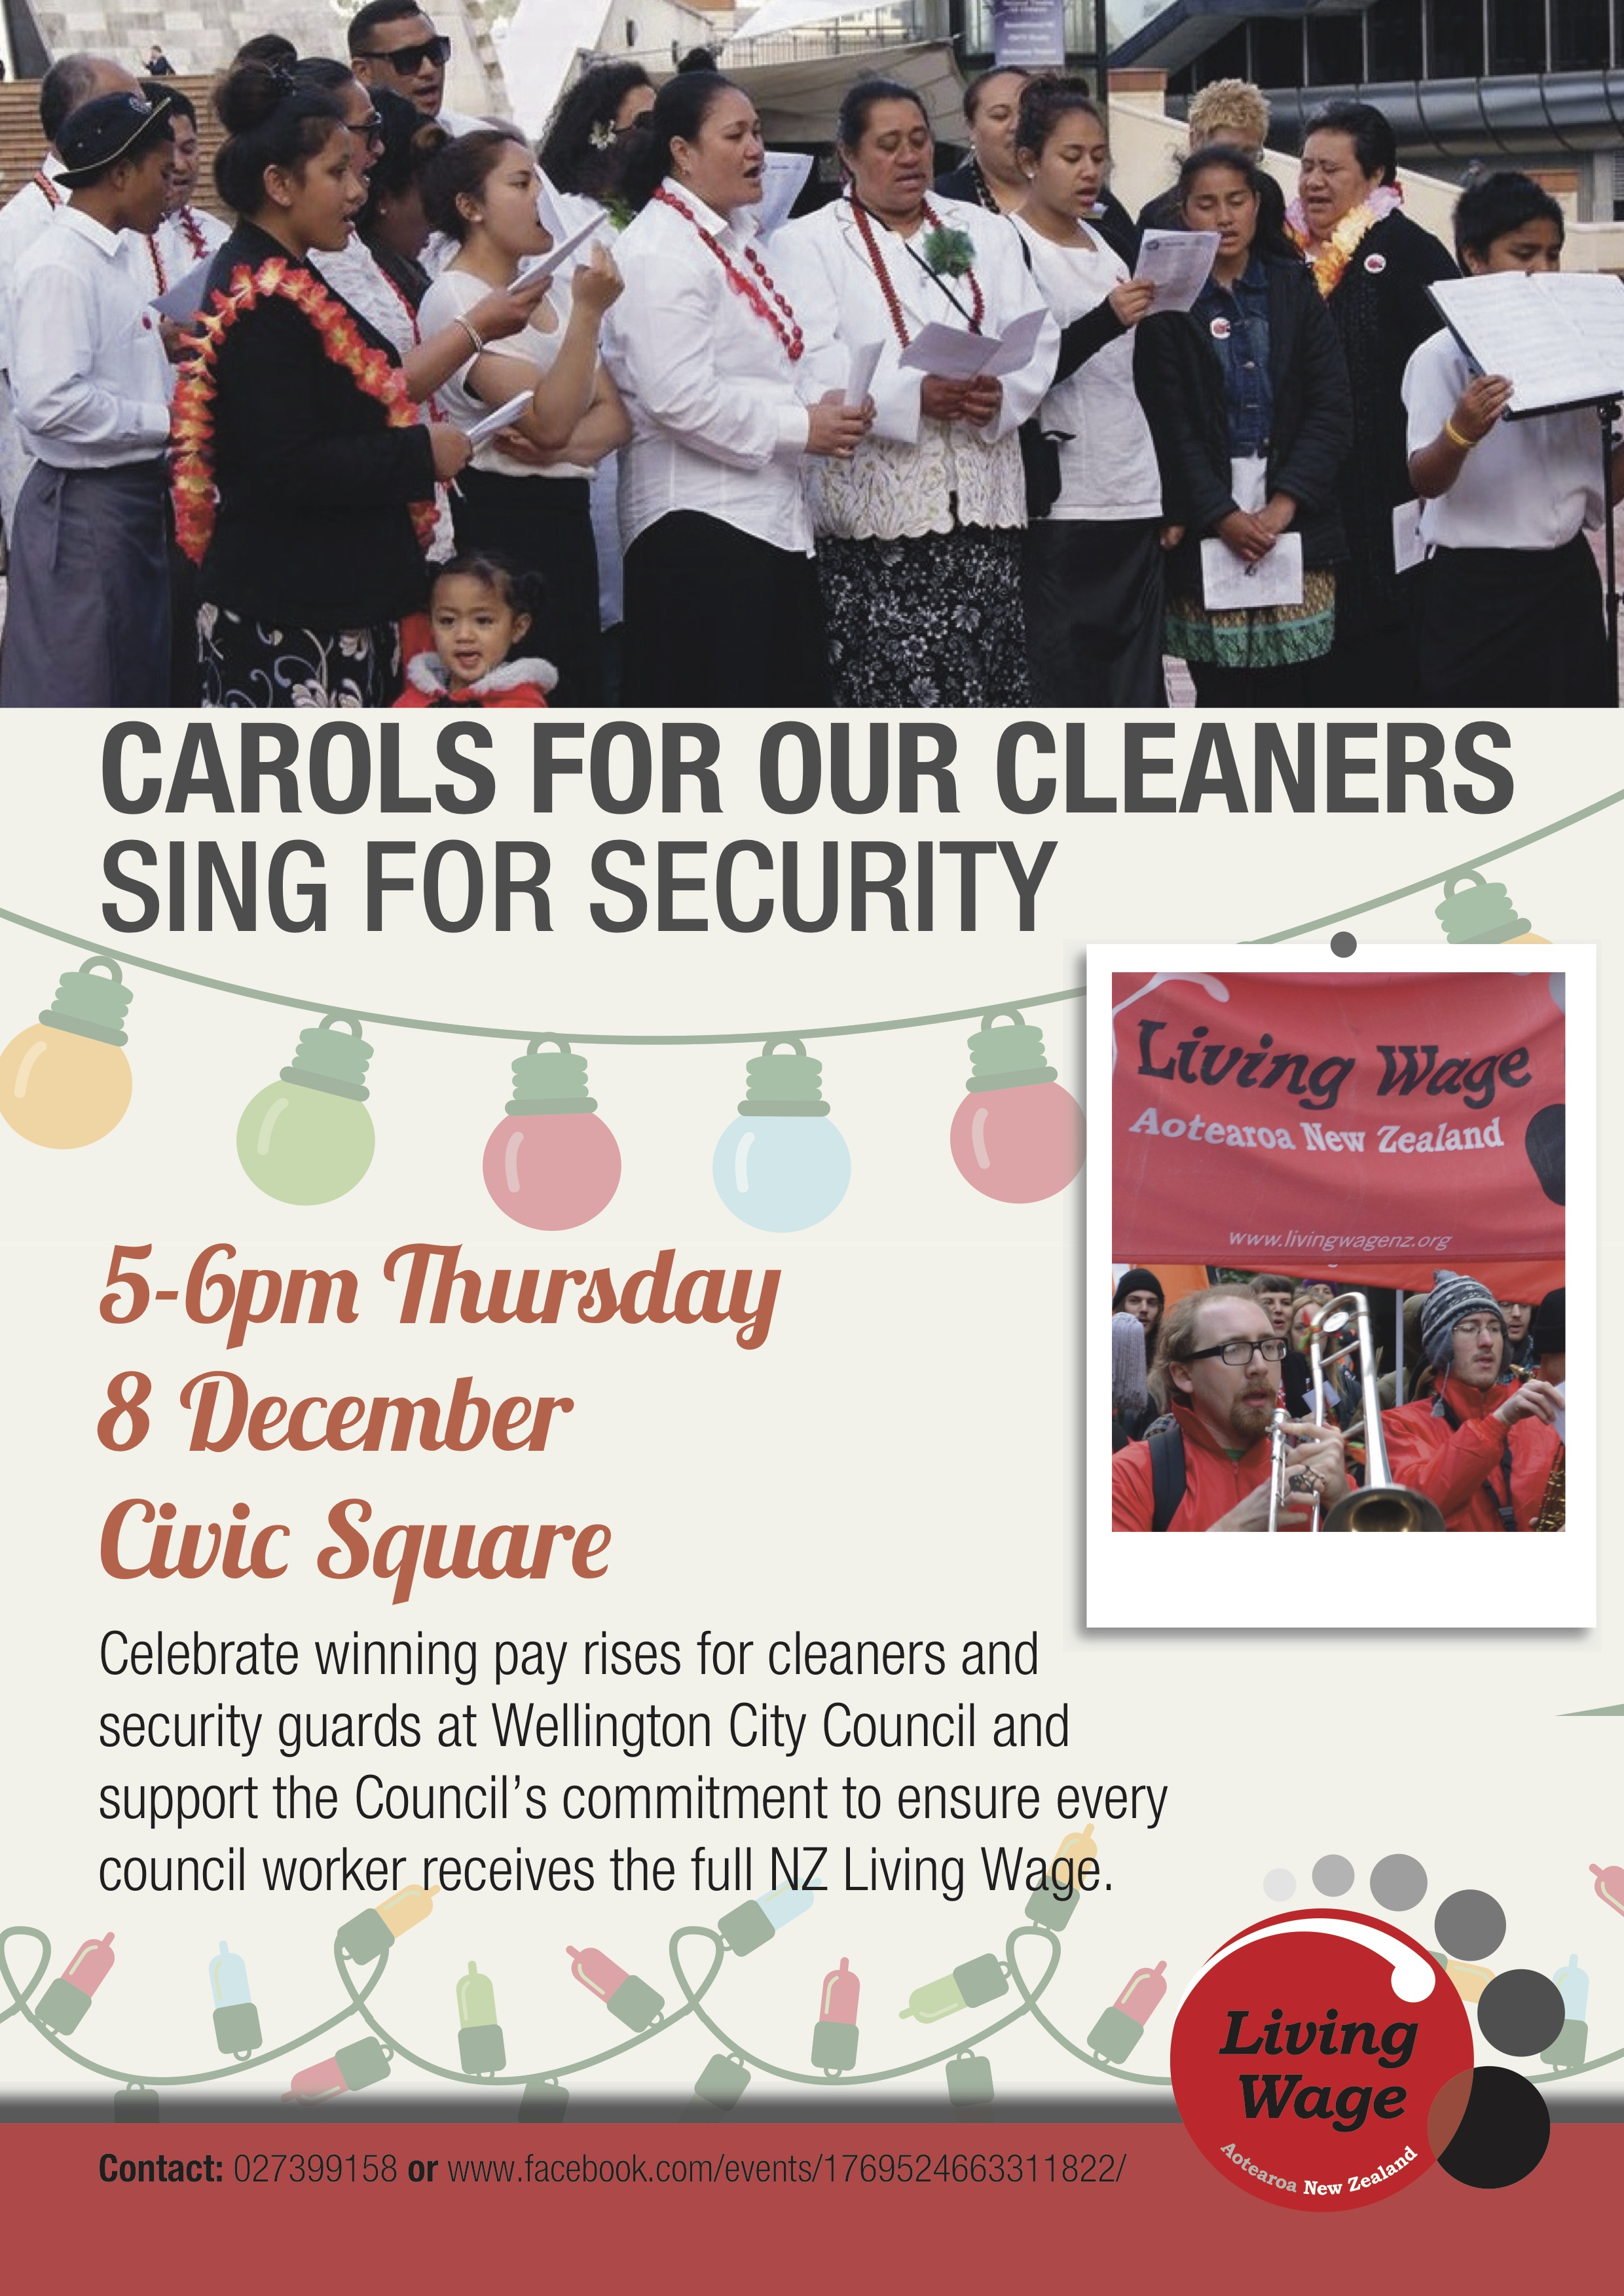 Carols_for_Our_Cleaners_2016.jpg